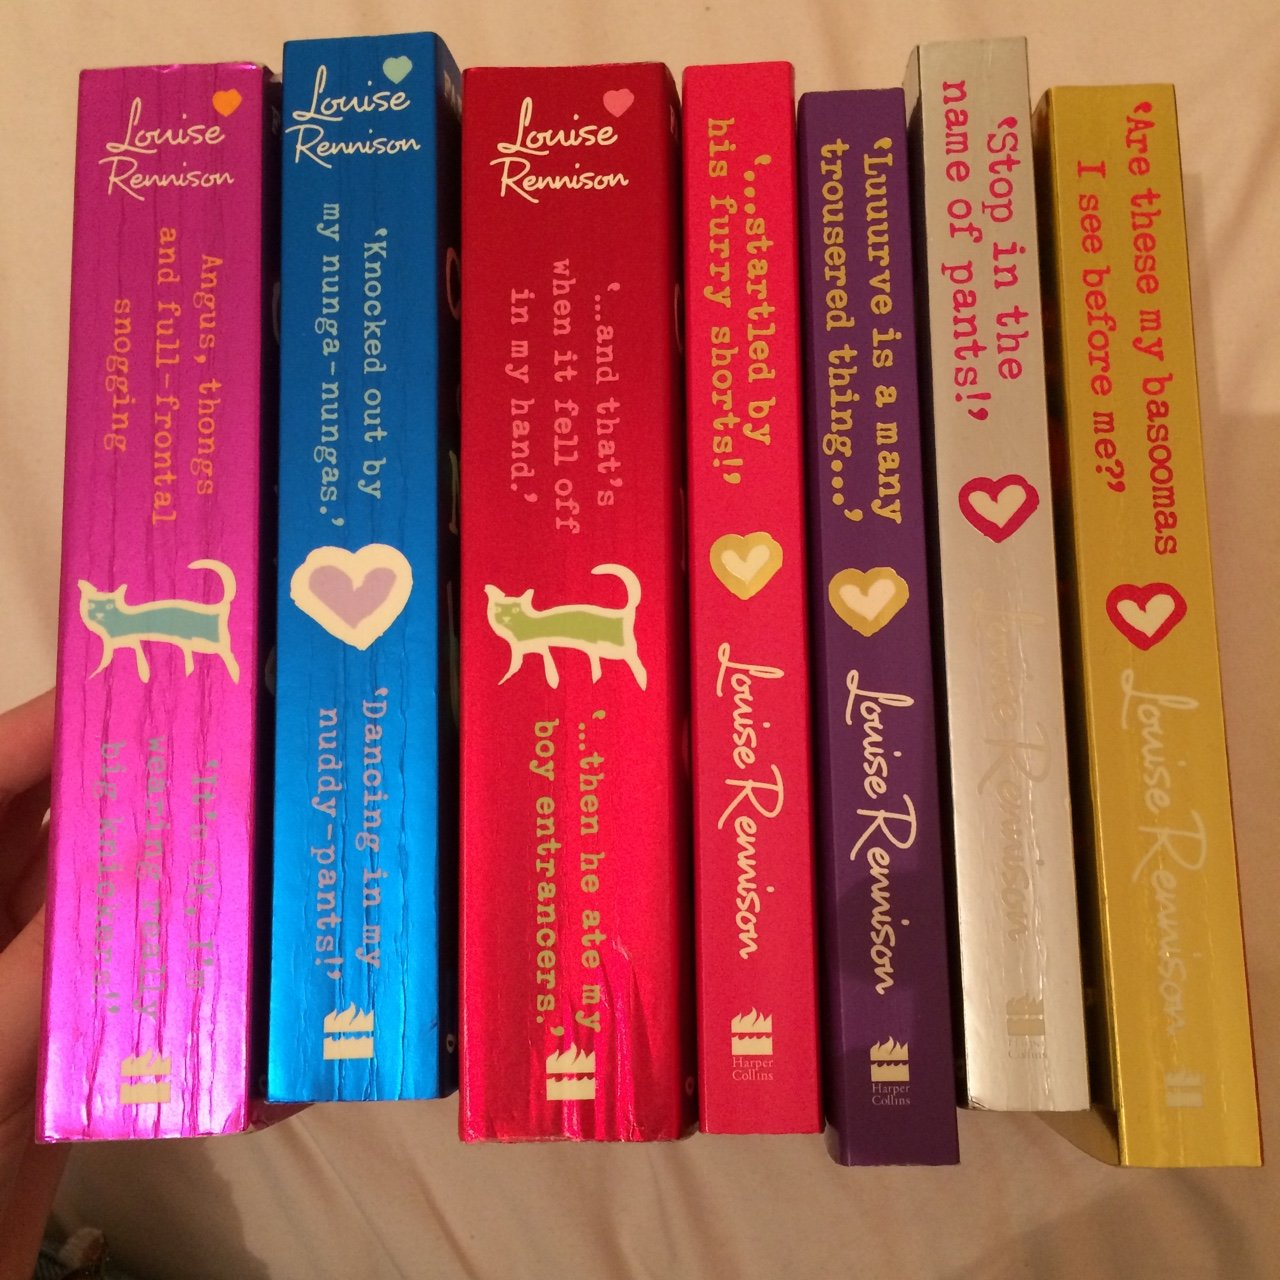 angus thongs and full frontal snogging confessions of georgia nicolson book 1